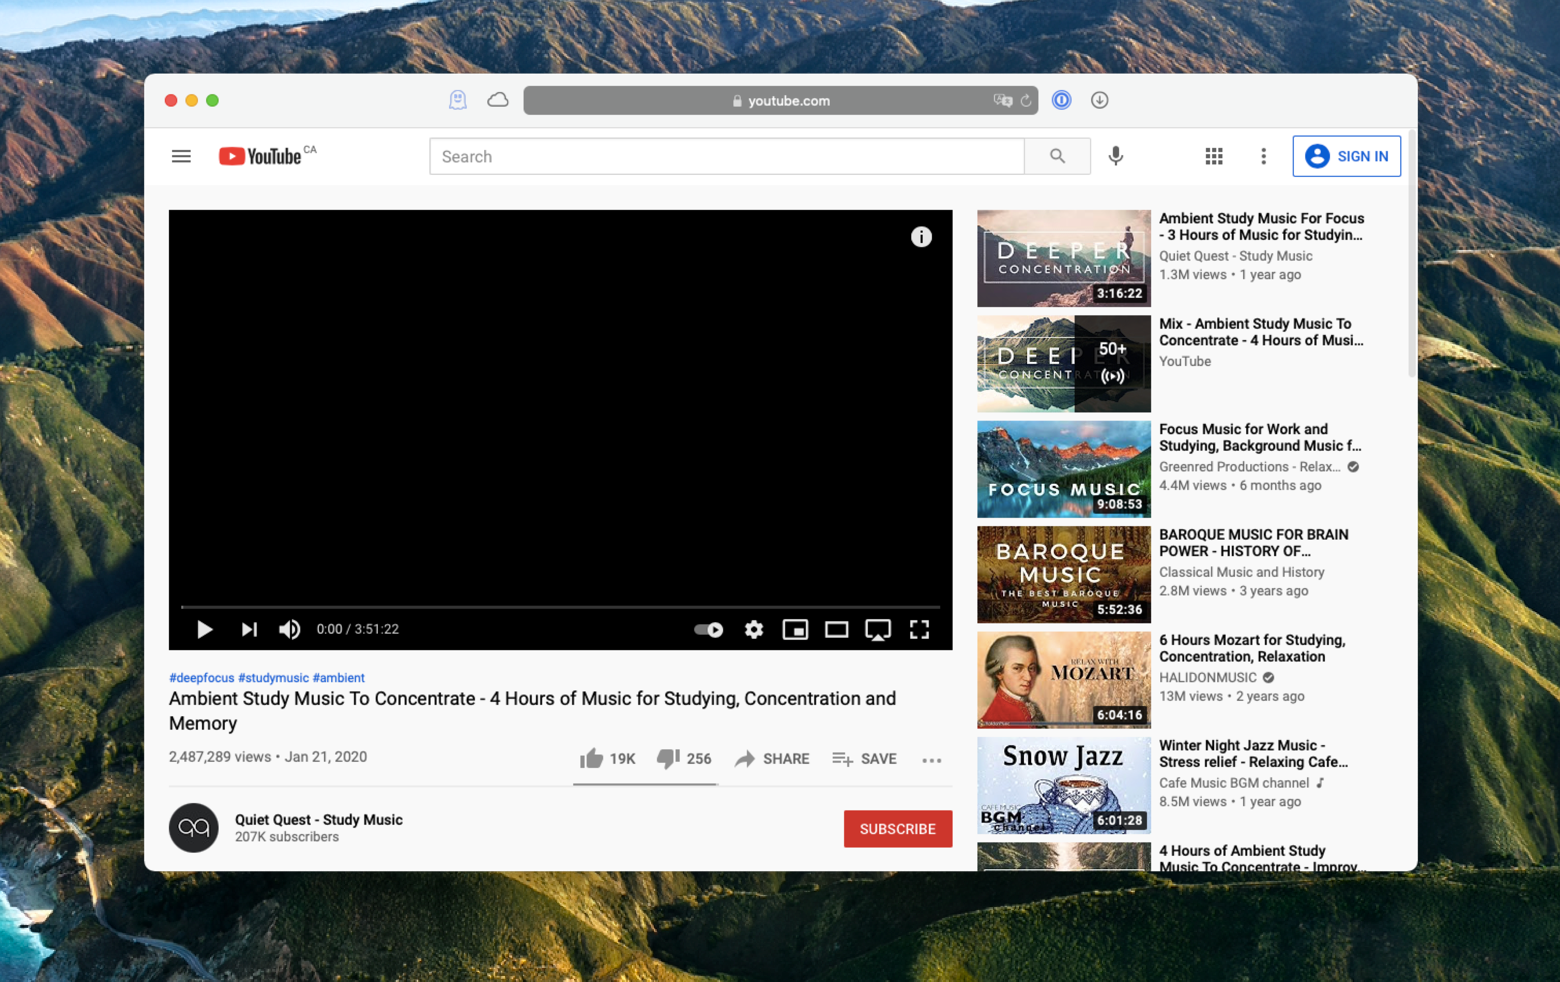 the black screen YouTube issue